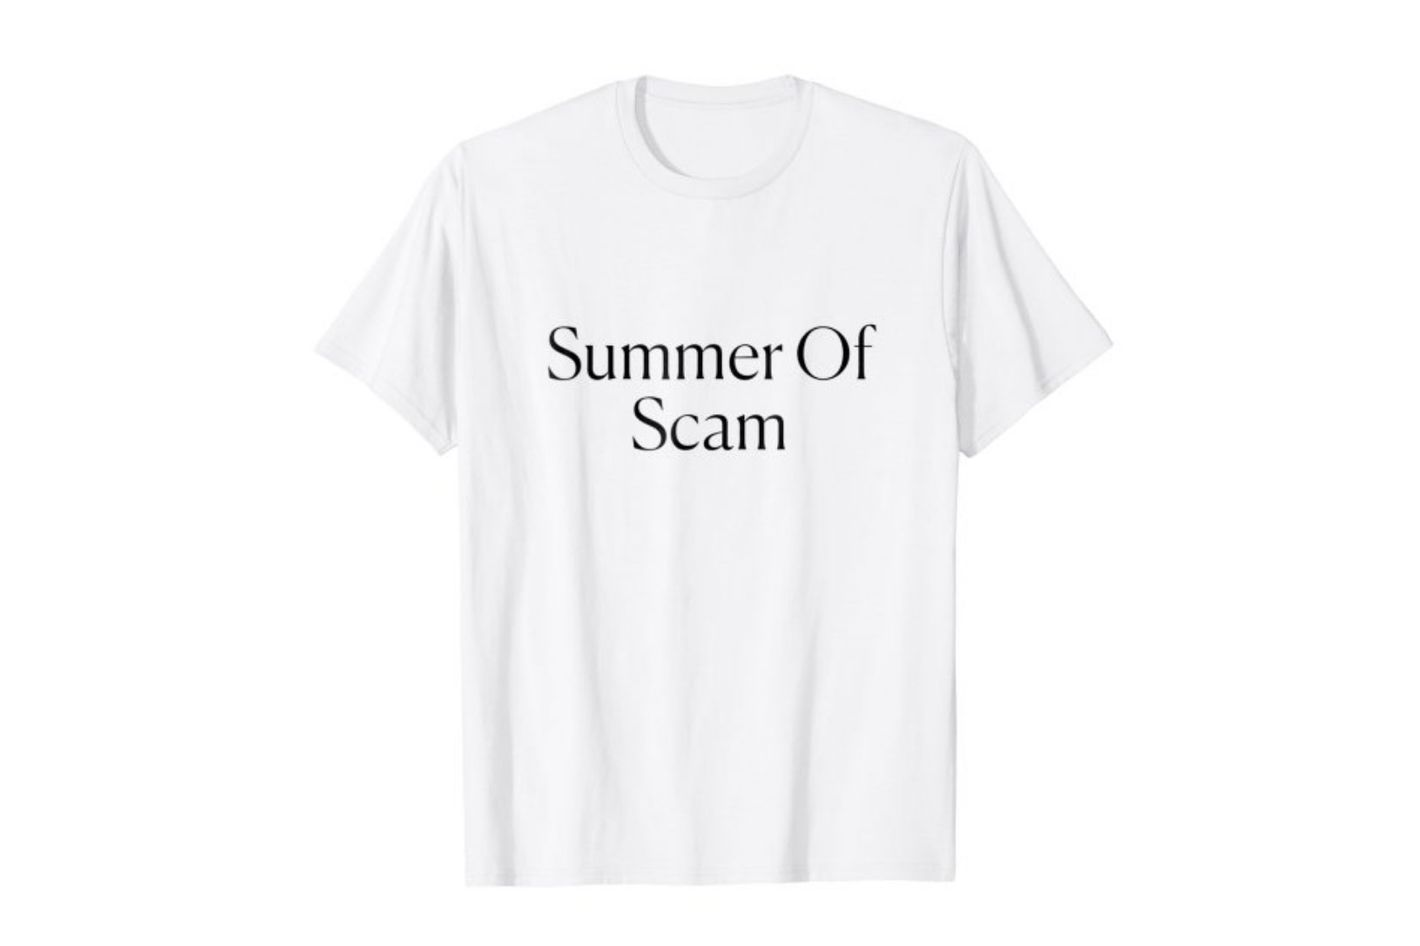 Summer of Scam tee